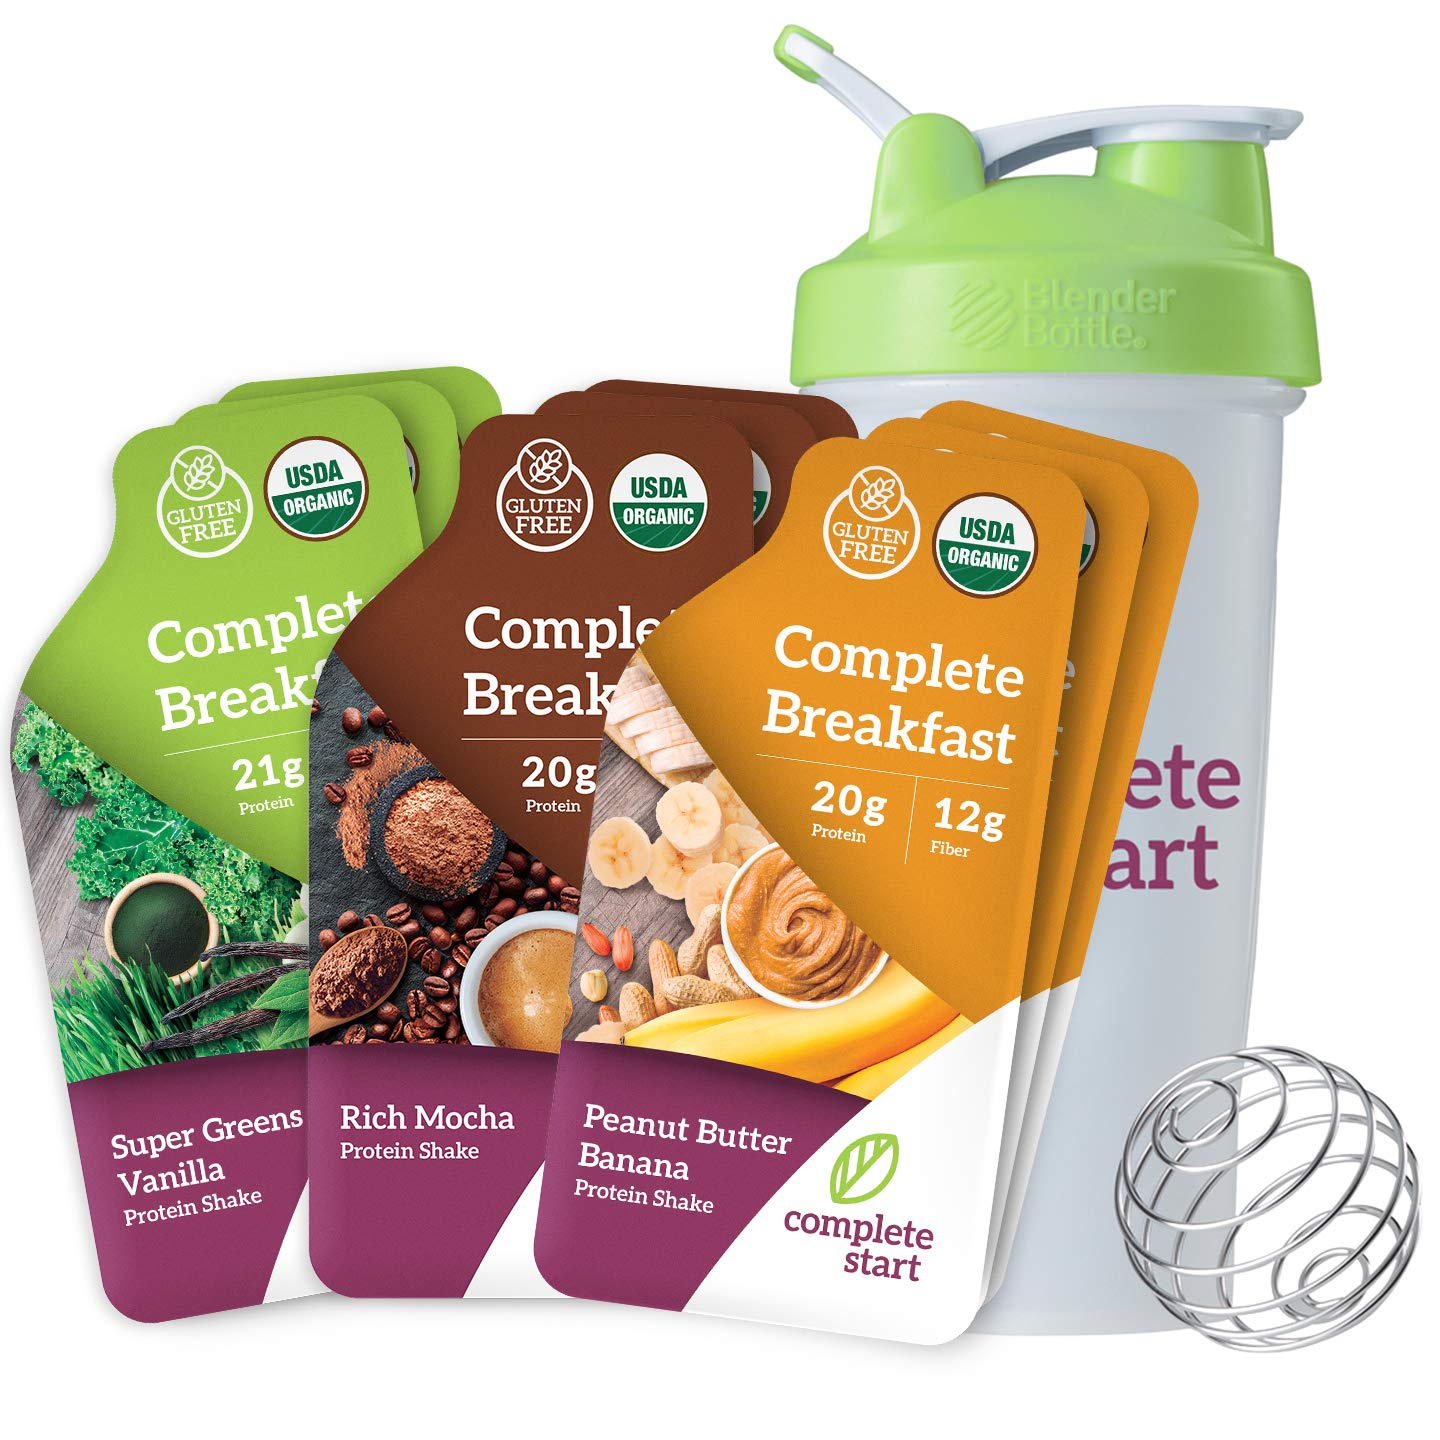 Complete Start Meal Replacement Shake   Gluten Free Weight Loss, Breakfast Nutritional Supplement   USDA Organic, Dairy Free, Non-GMO, Vegan, Plant-Based Whole Foods   Bonus Shaker Bottle by Complete Start